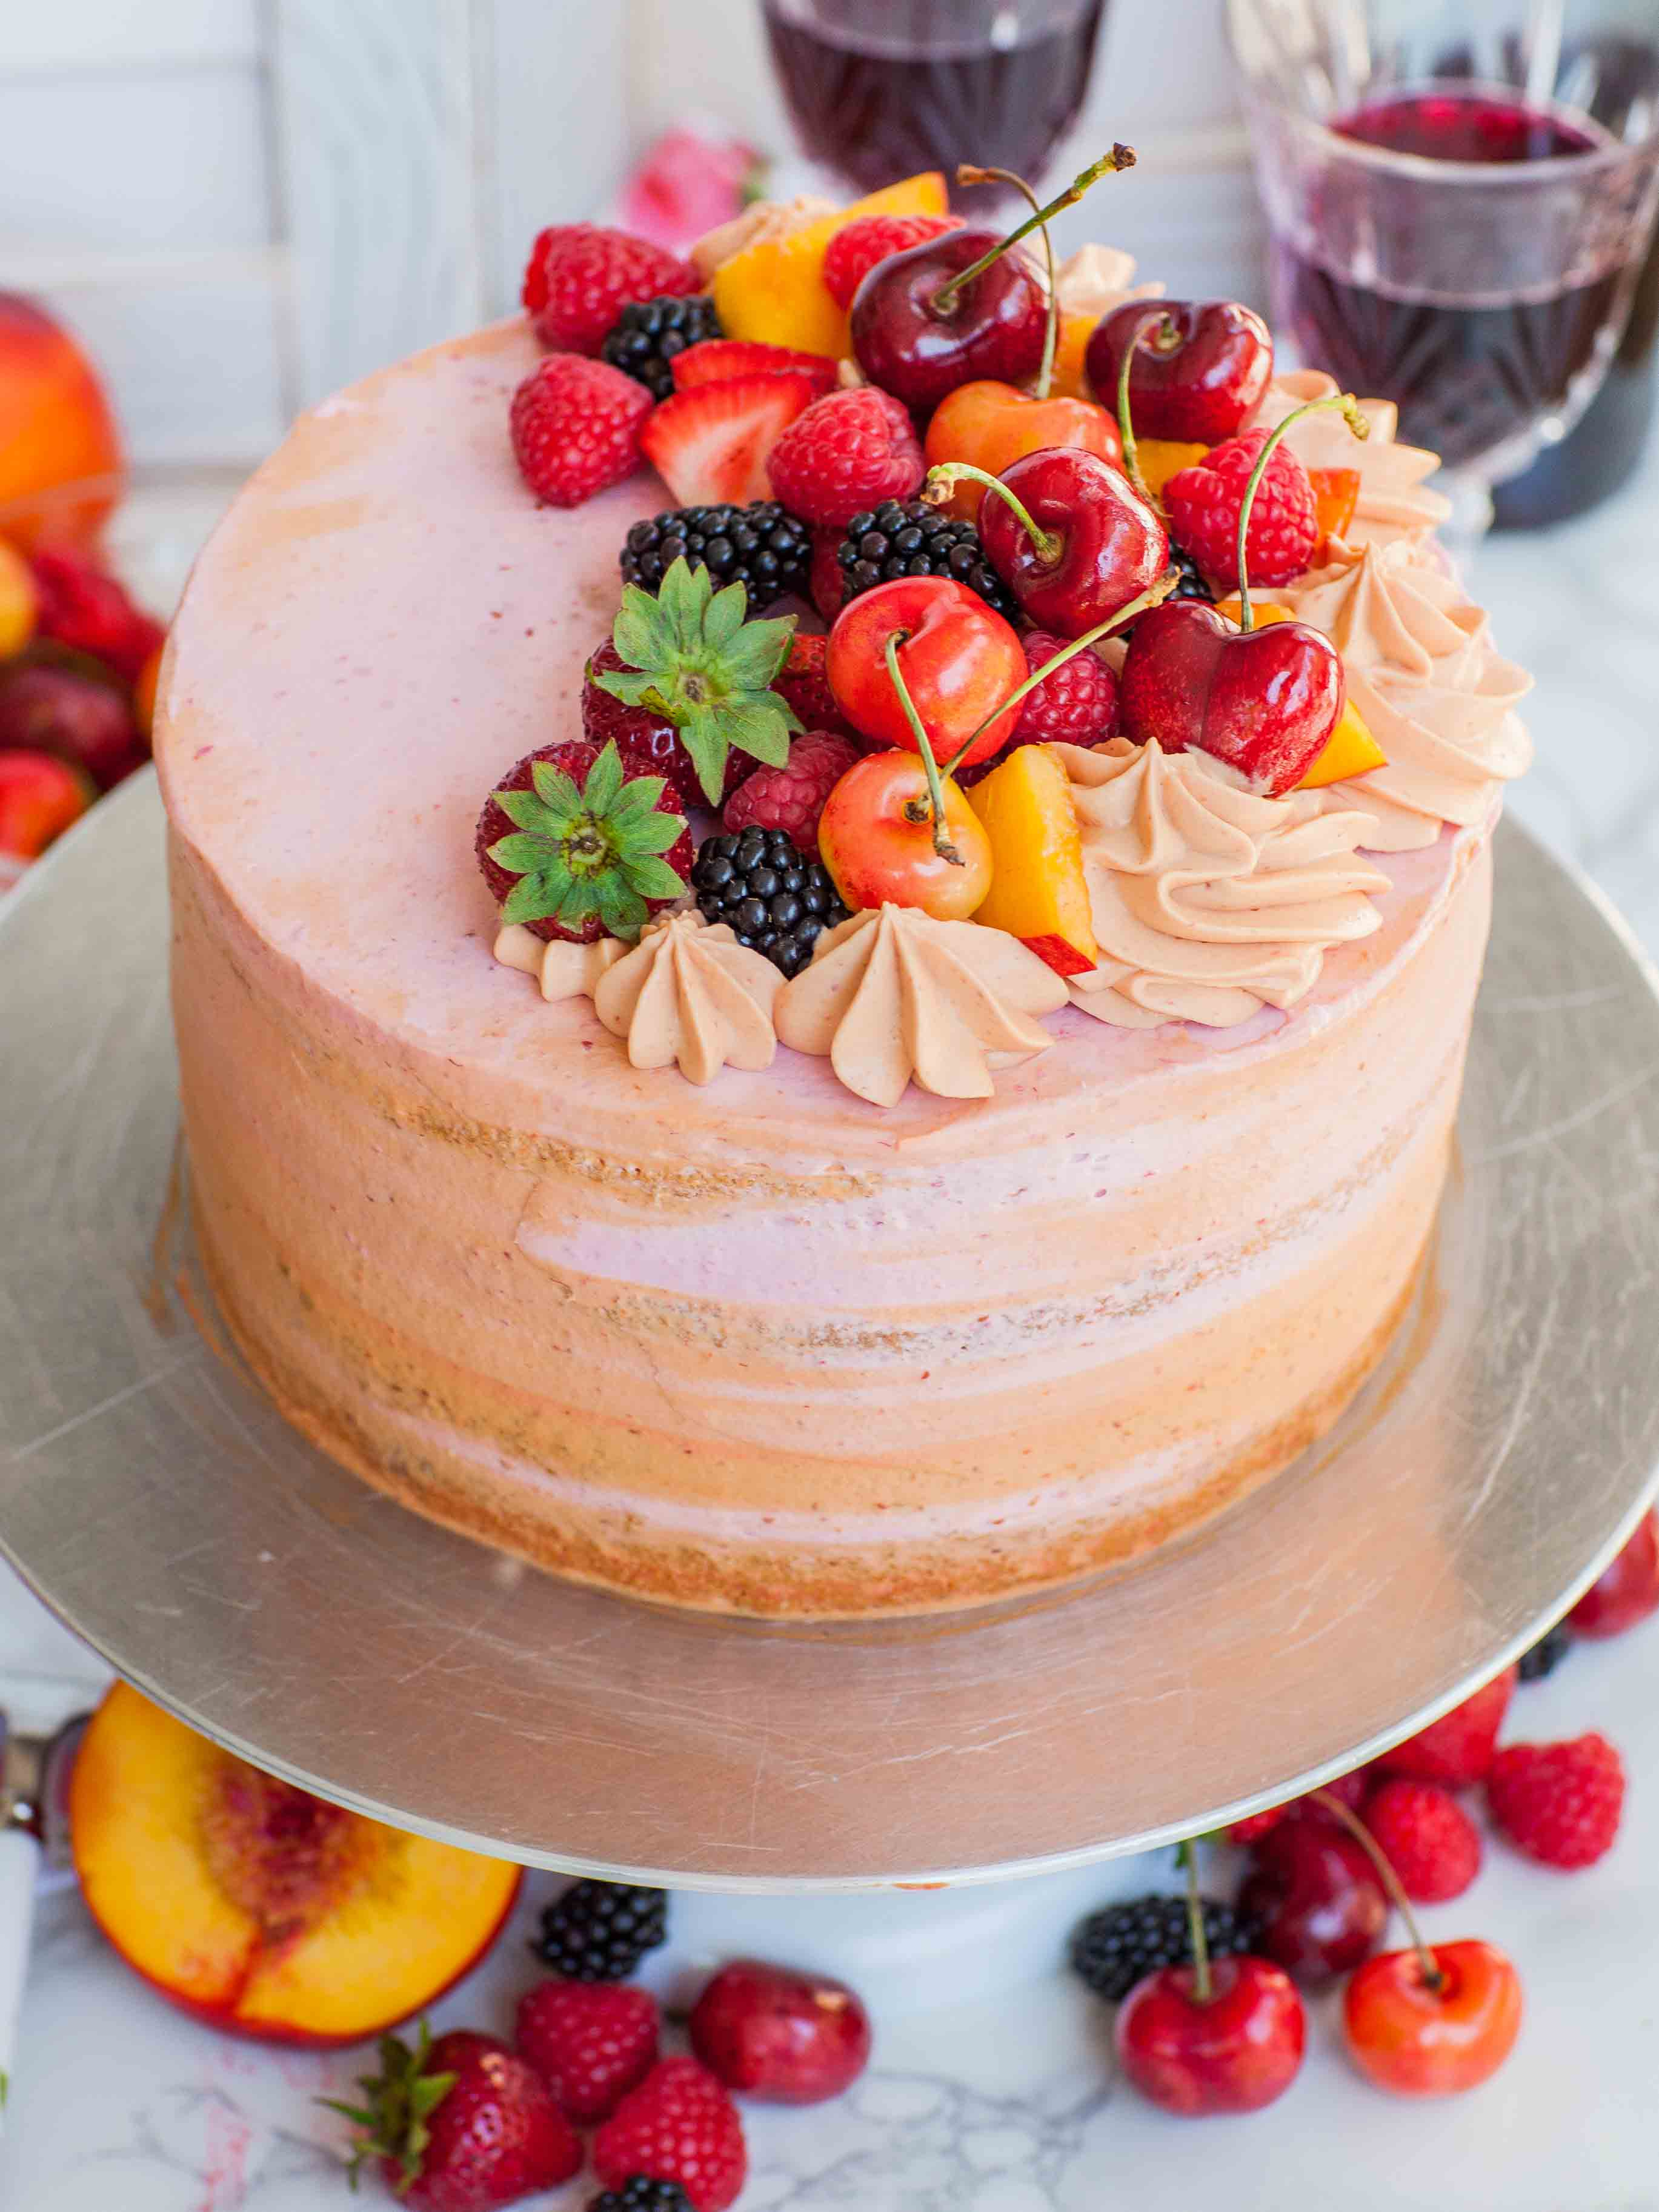 Order yummylicious cake online with Mickys